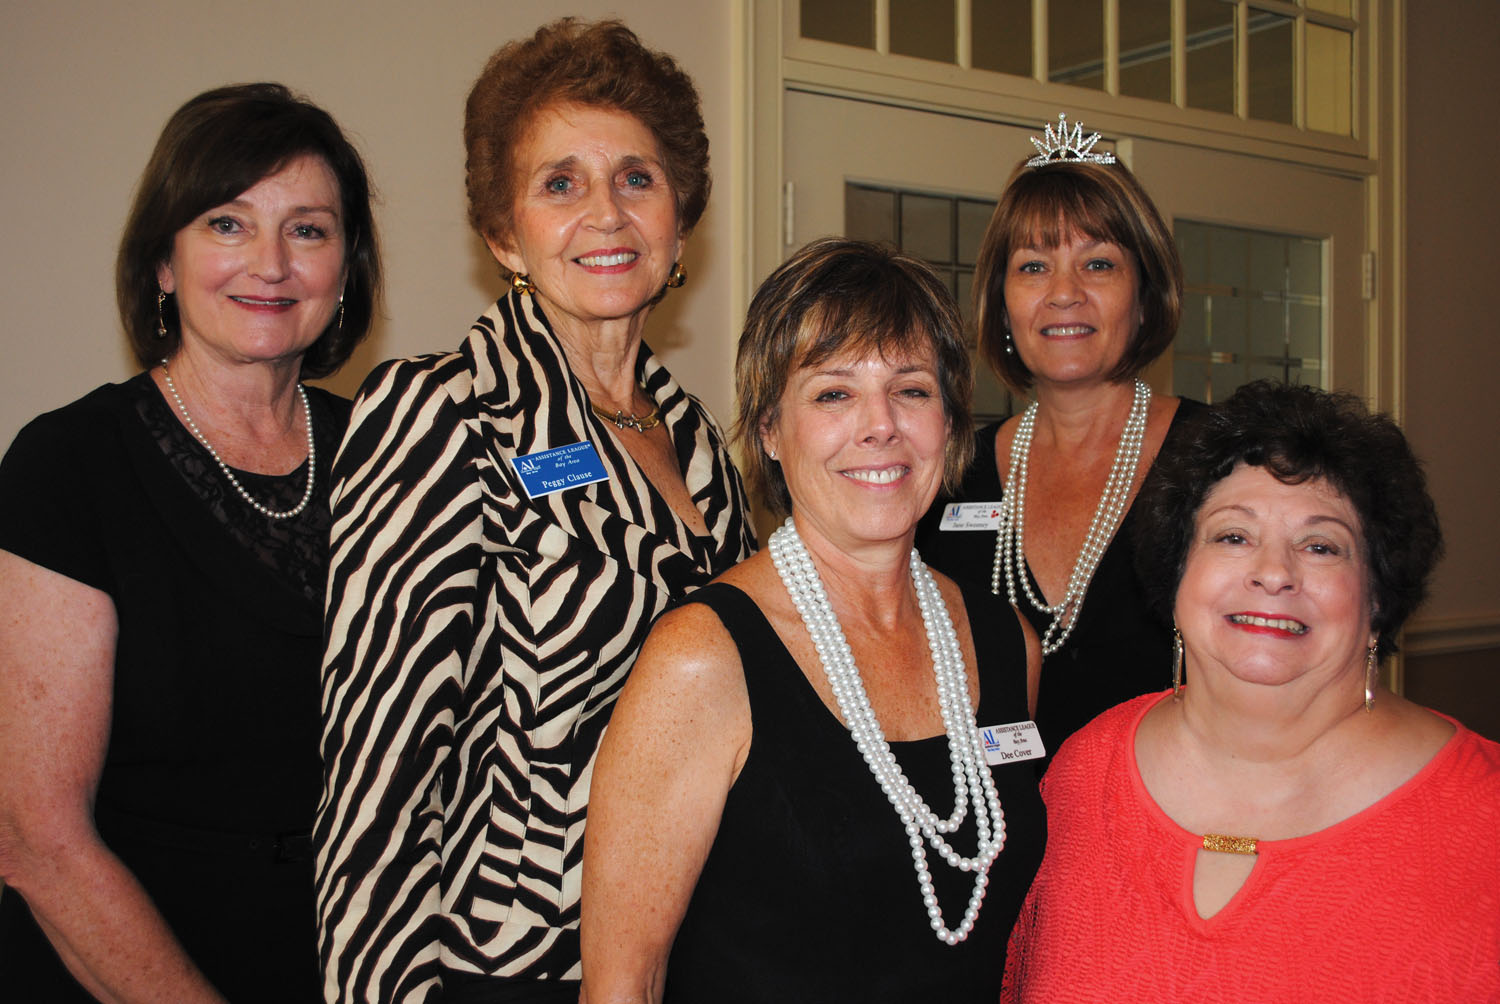 New Assistance League officers get together for a photo op as a new year begins. They are, from left, Secretary Ginger Darnell, President Peggy Clause, President-elect Dee Cover, Treasurer Jane Sweeney and Parliamentarian Sharon Dillard.